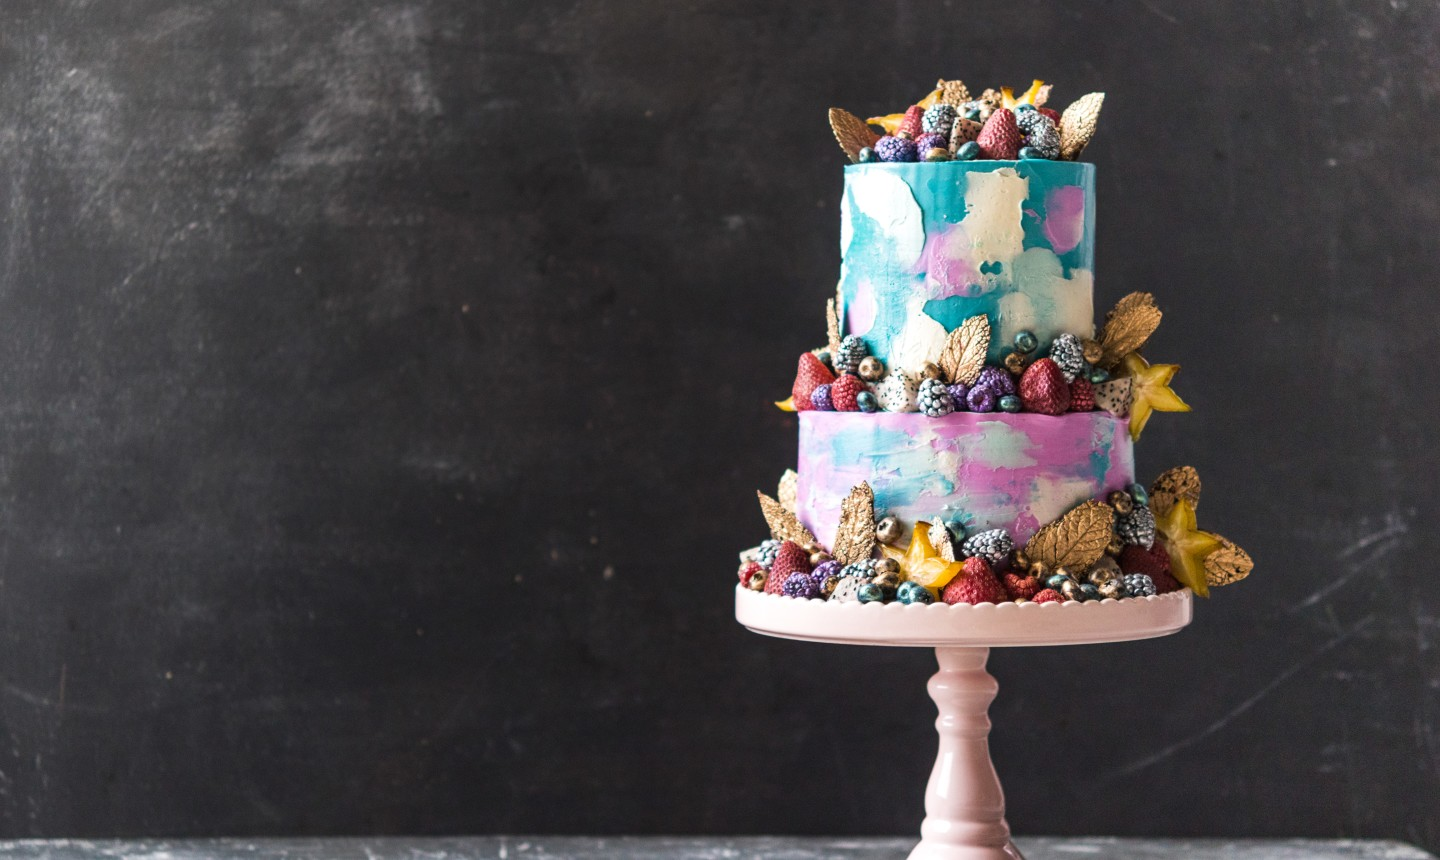 painted fruity cake